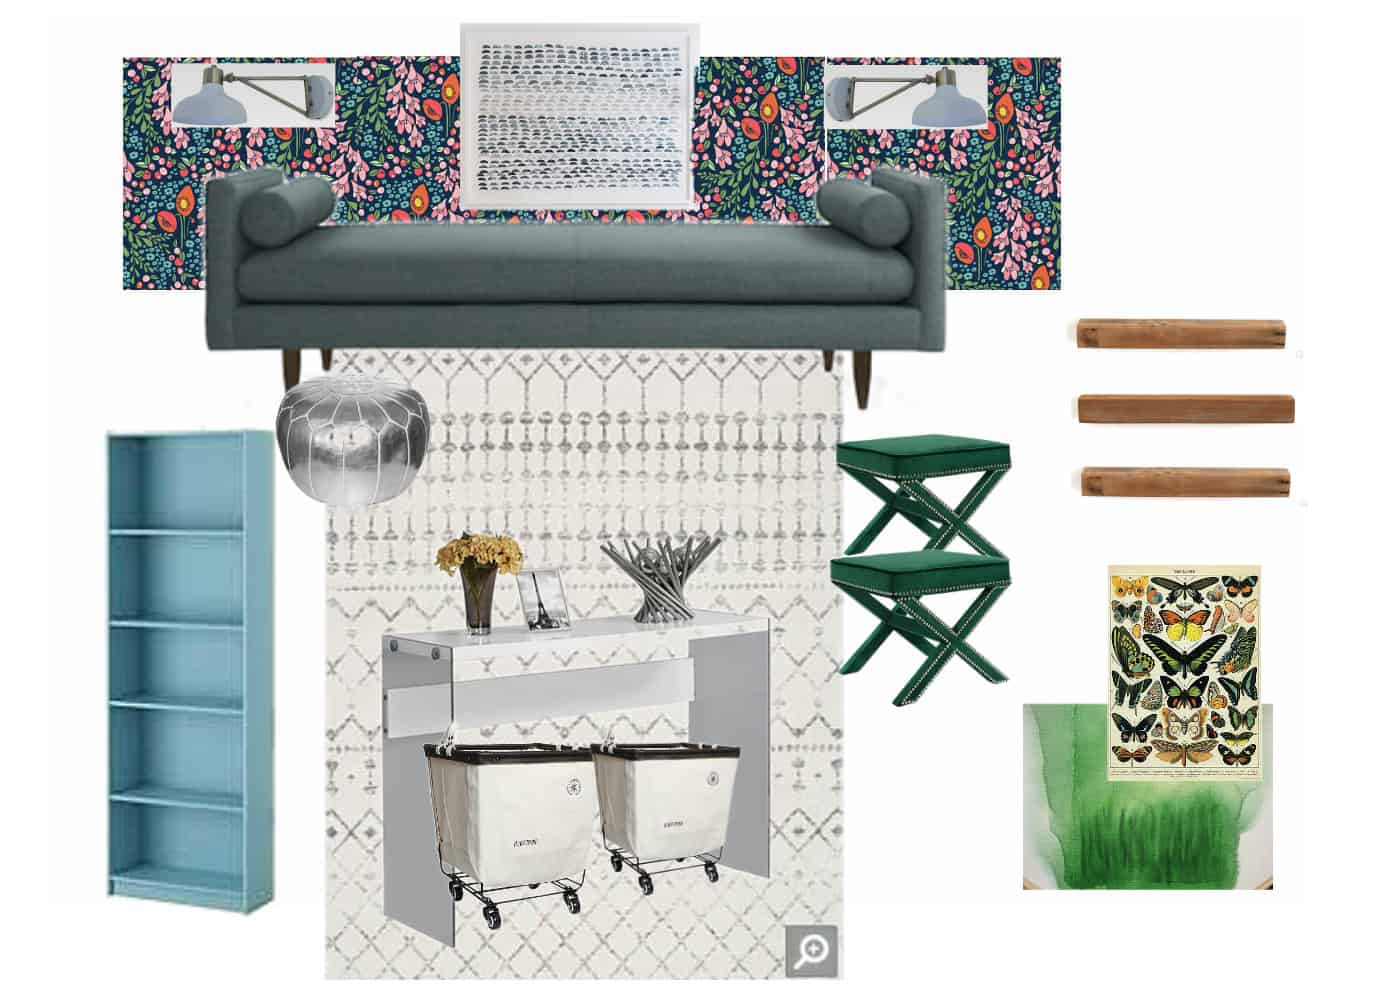 plans for guest room update